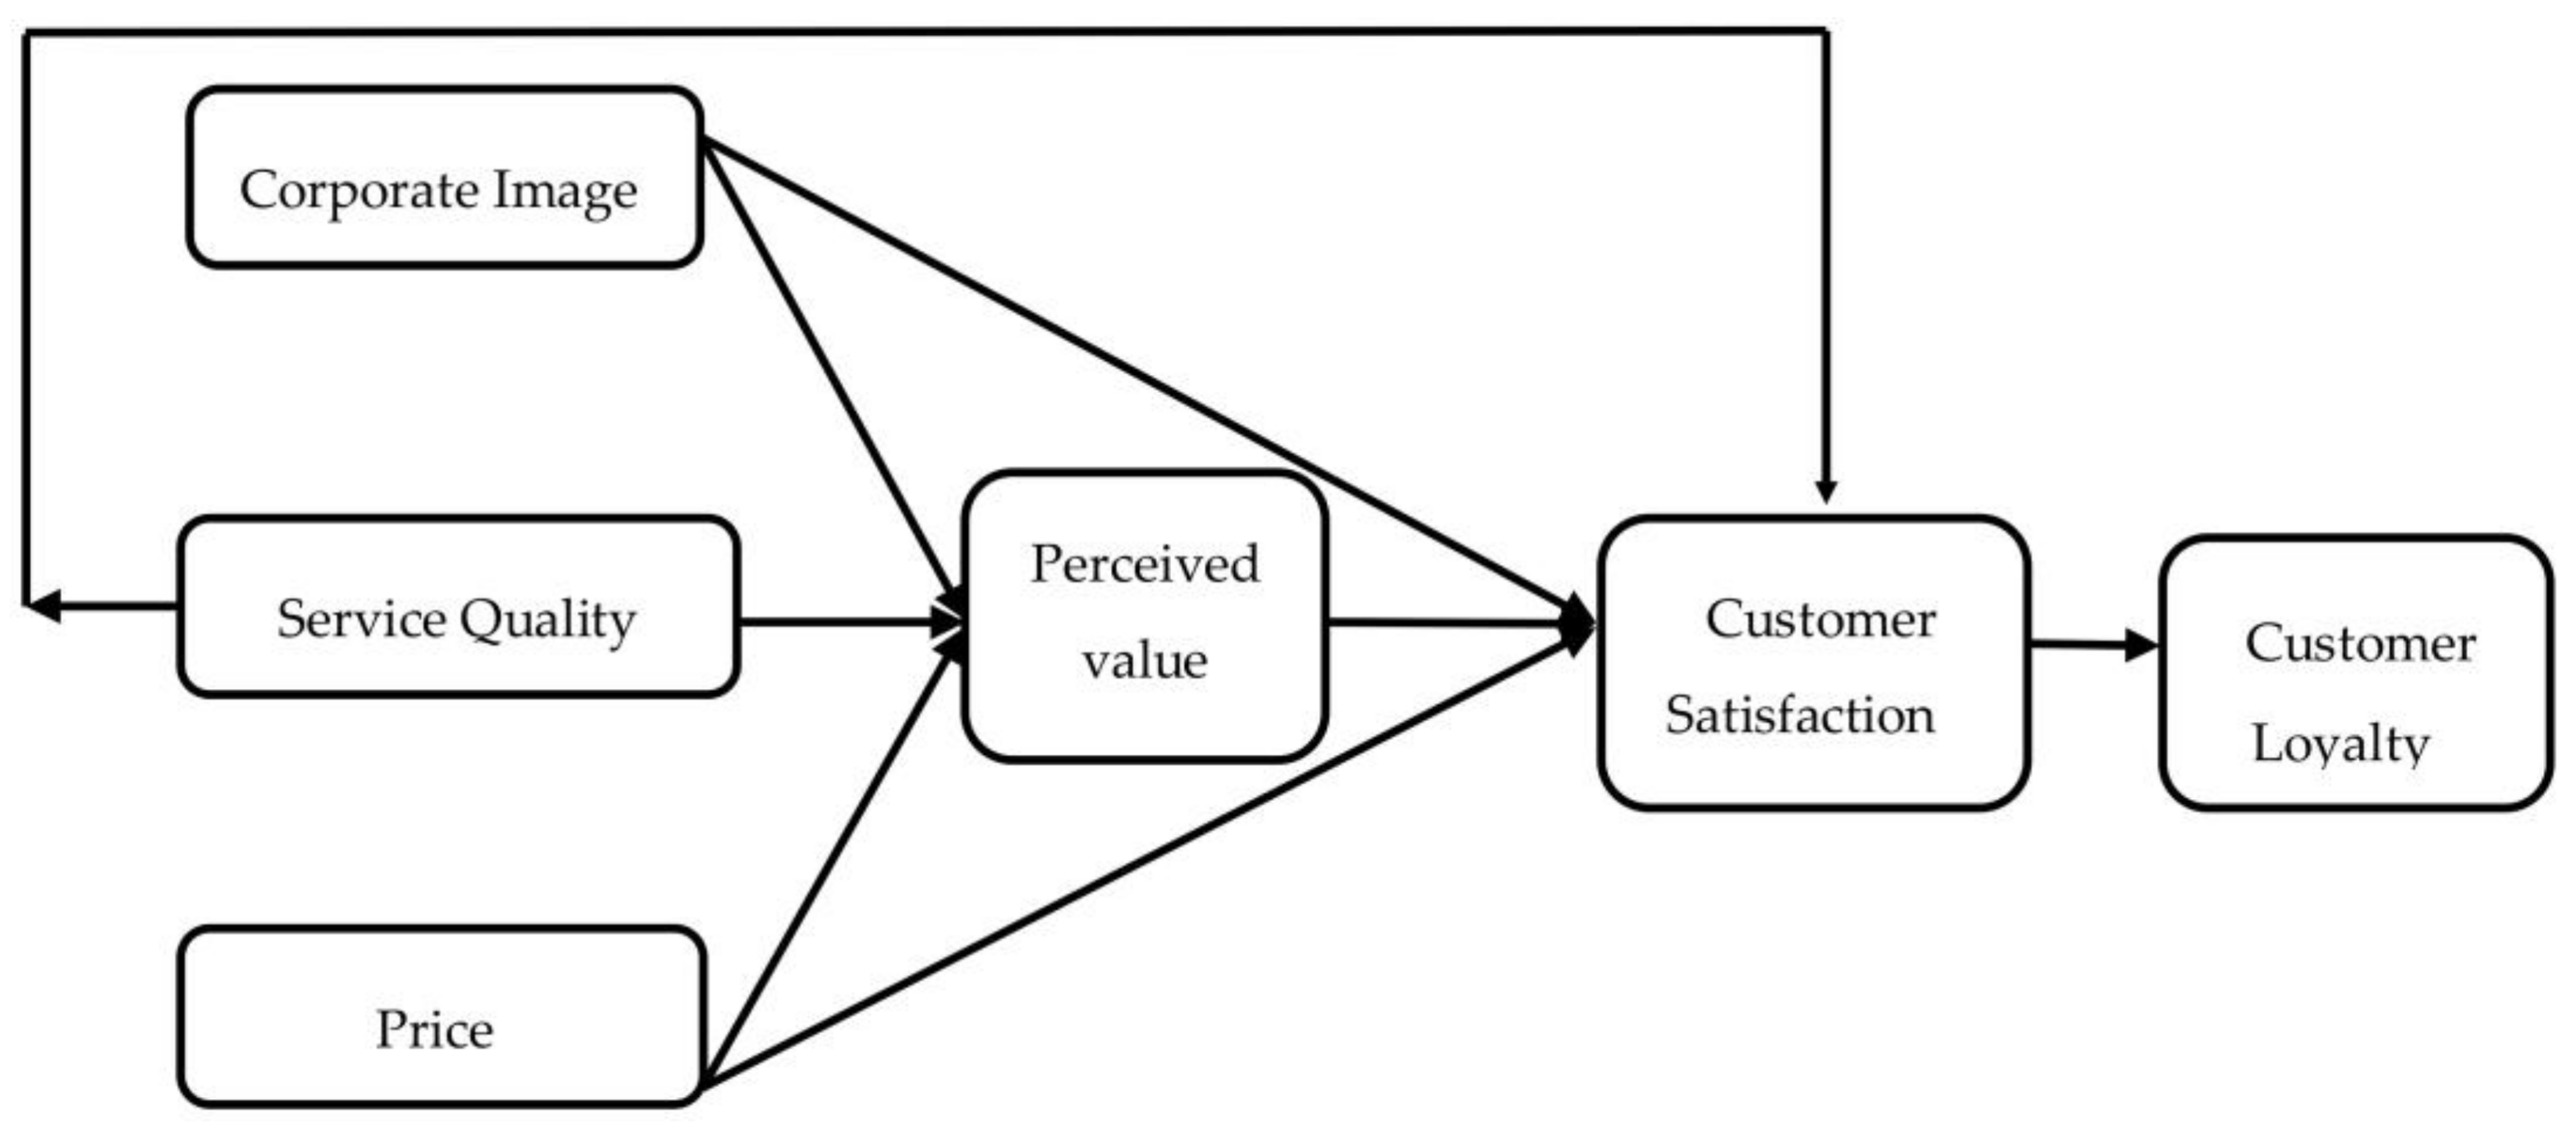 determinants of relationship quality and loyalty in personalized services